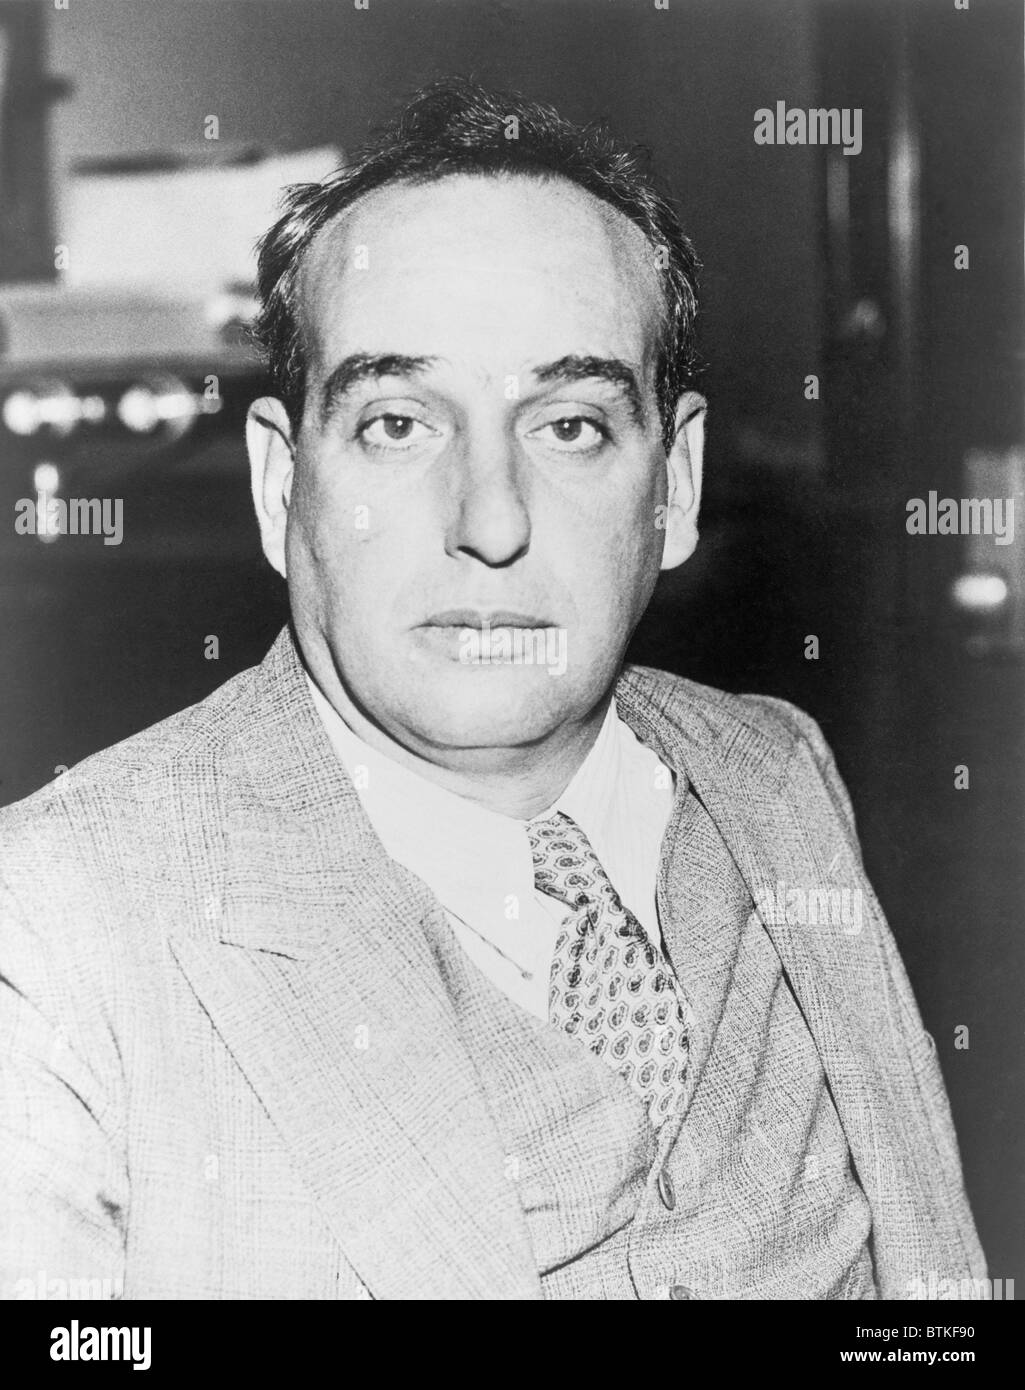 Robert Moses (1888-1981), city planner of New York City from 1933-1959, pursued large scale transformation of the - Stock Image